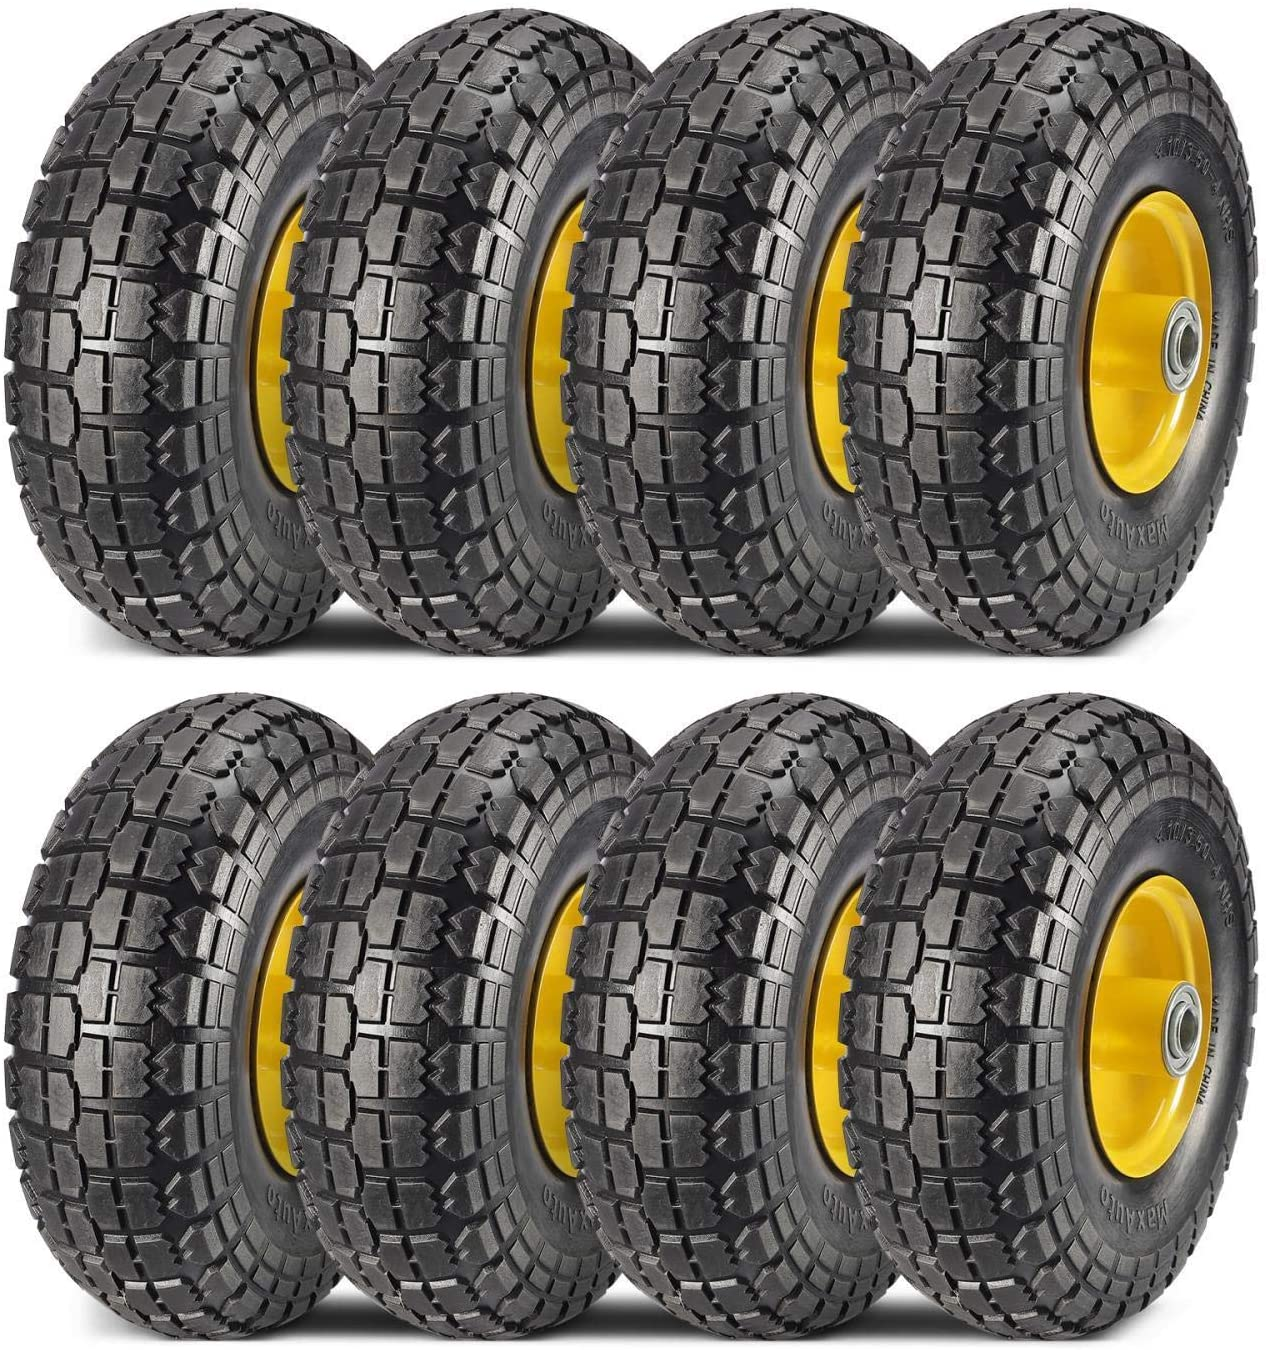 MaxAuto 8-Pack 10 Inch Solid Rubber Tyre Wheels Garden Wagon Cart Trolley Tires 4.10/3.50-4